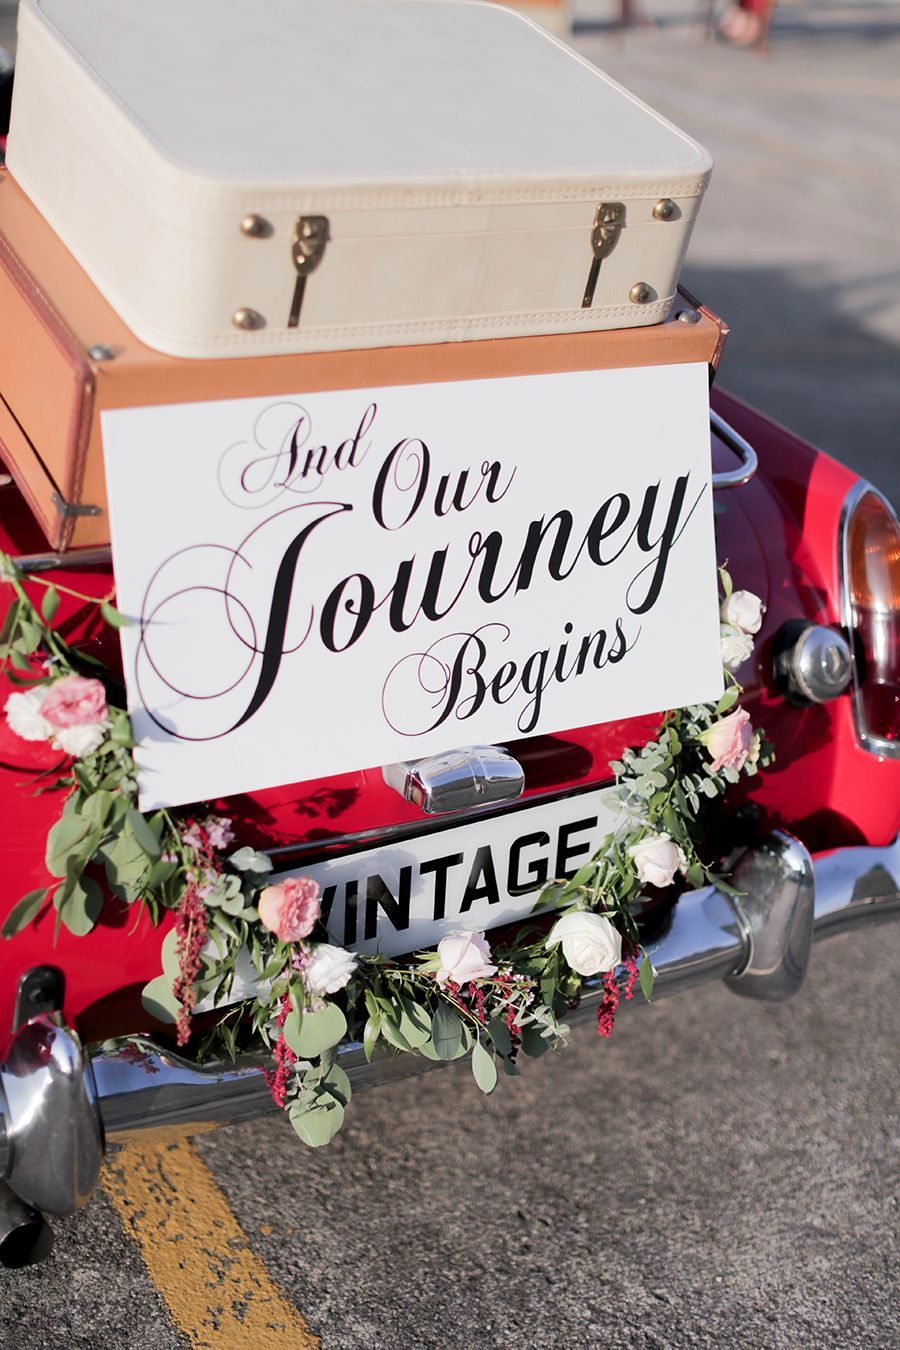 Wedding decorations car  Vintage Bride in a Classic Ride Styled Portraits  Car signs